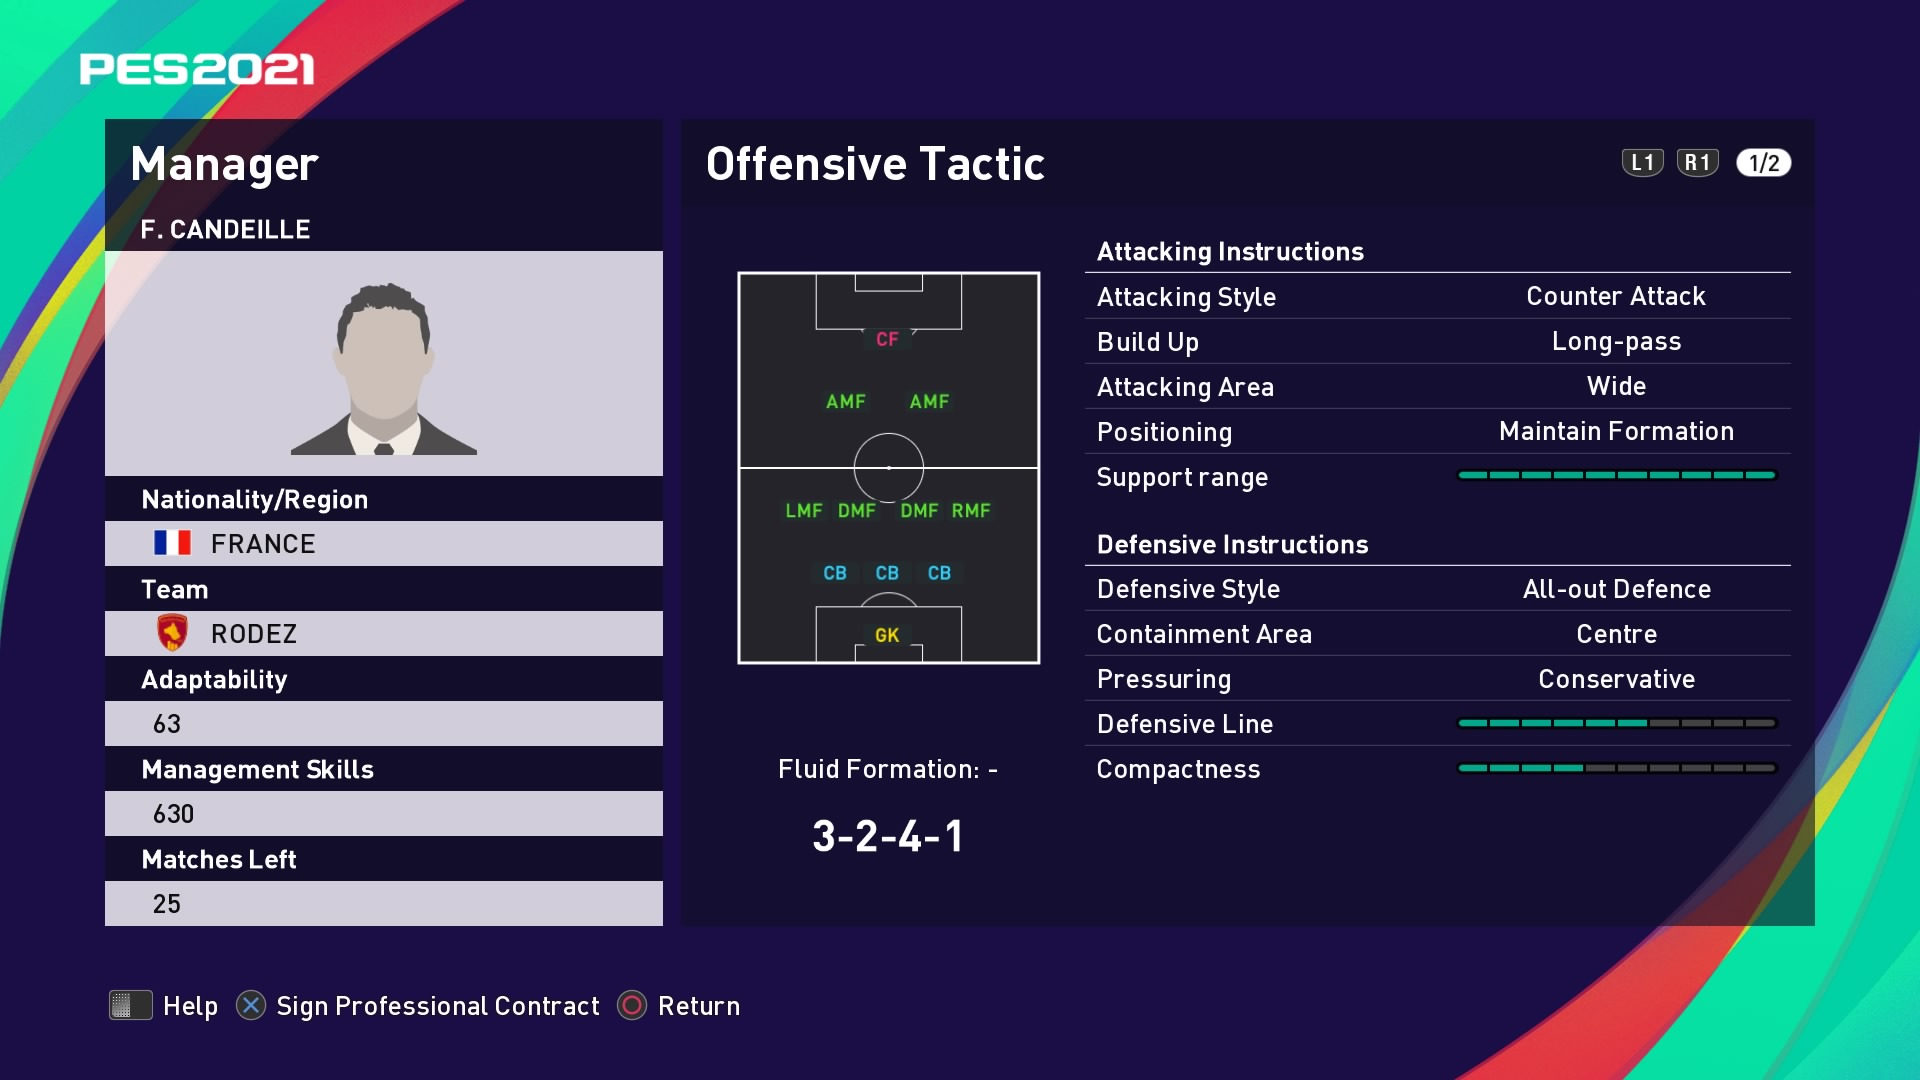 F. Candeille (Laurent Peyrelade) Offensive Tactic in PES 2021 myClub